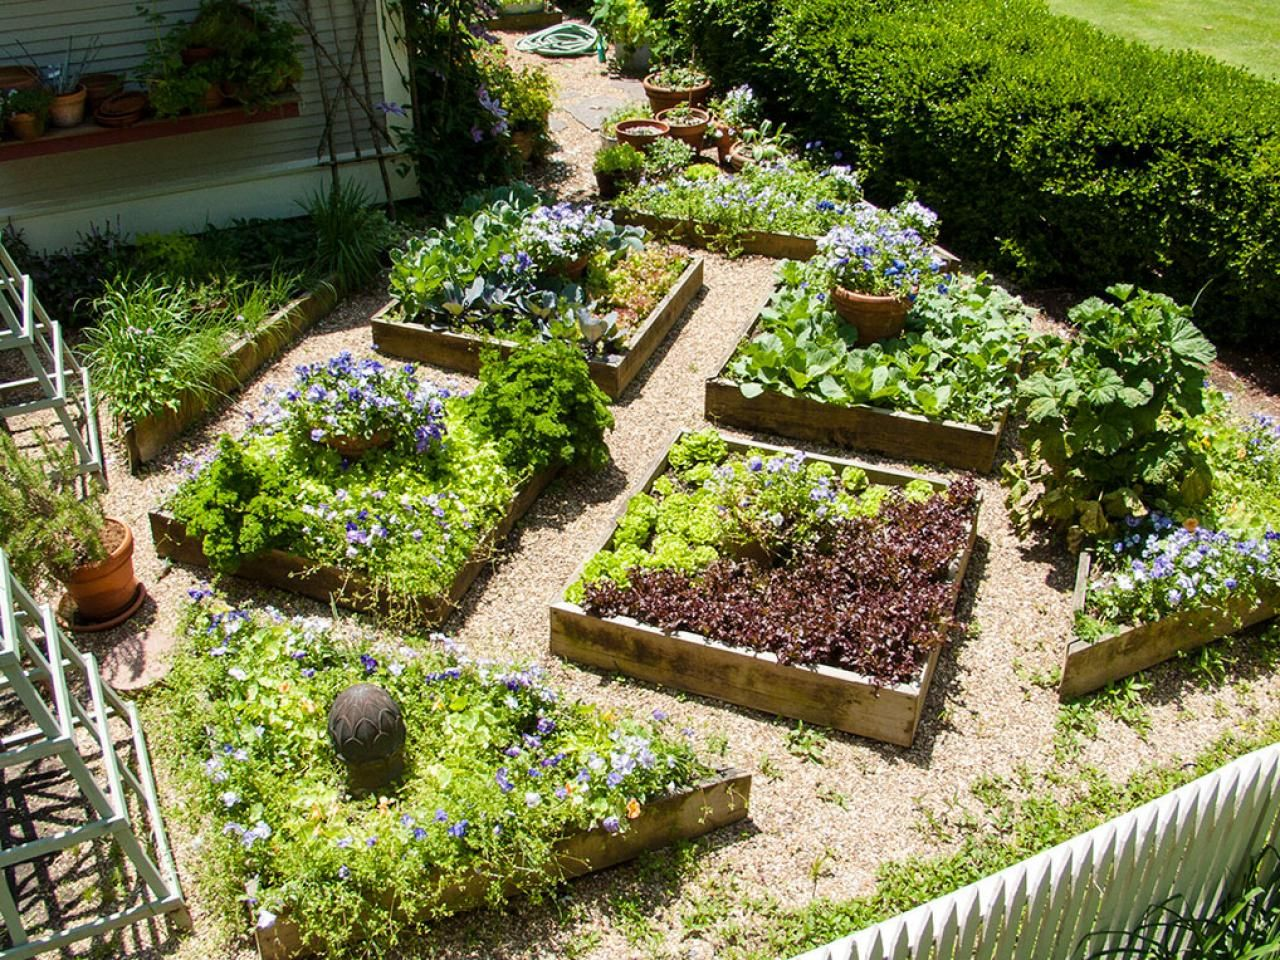 Edible Landscaping: Growing Your Own Food | Landscape designs ...